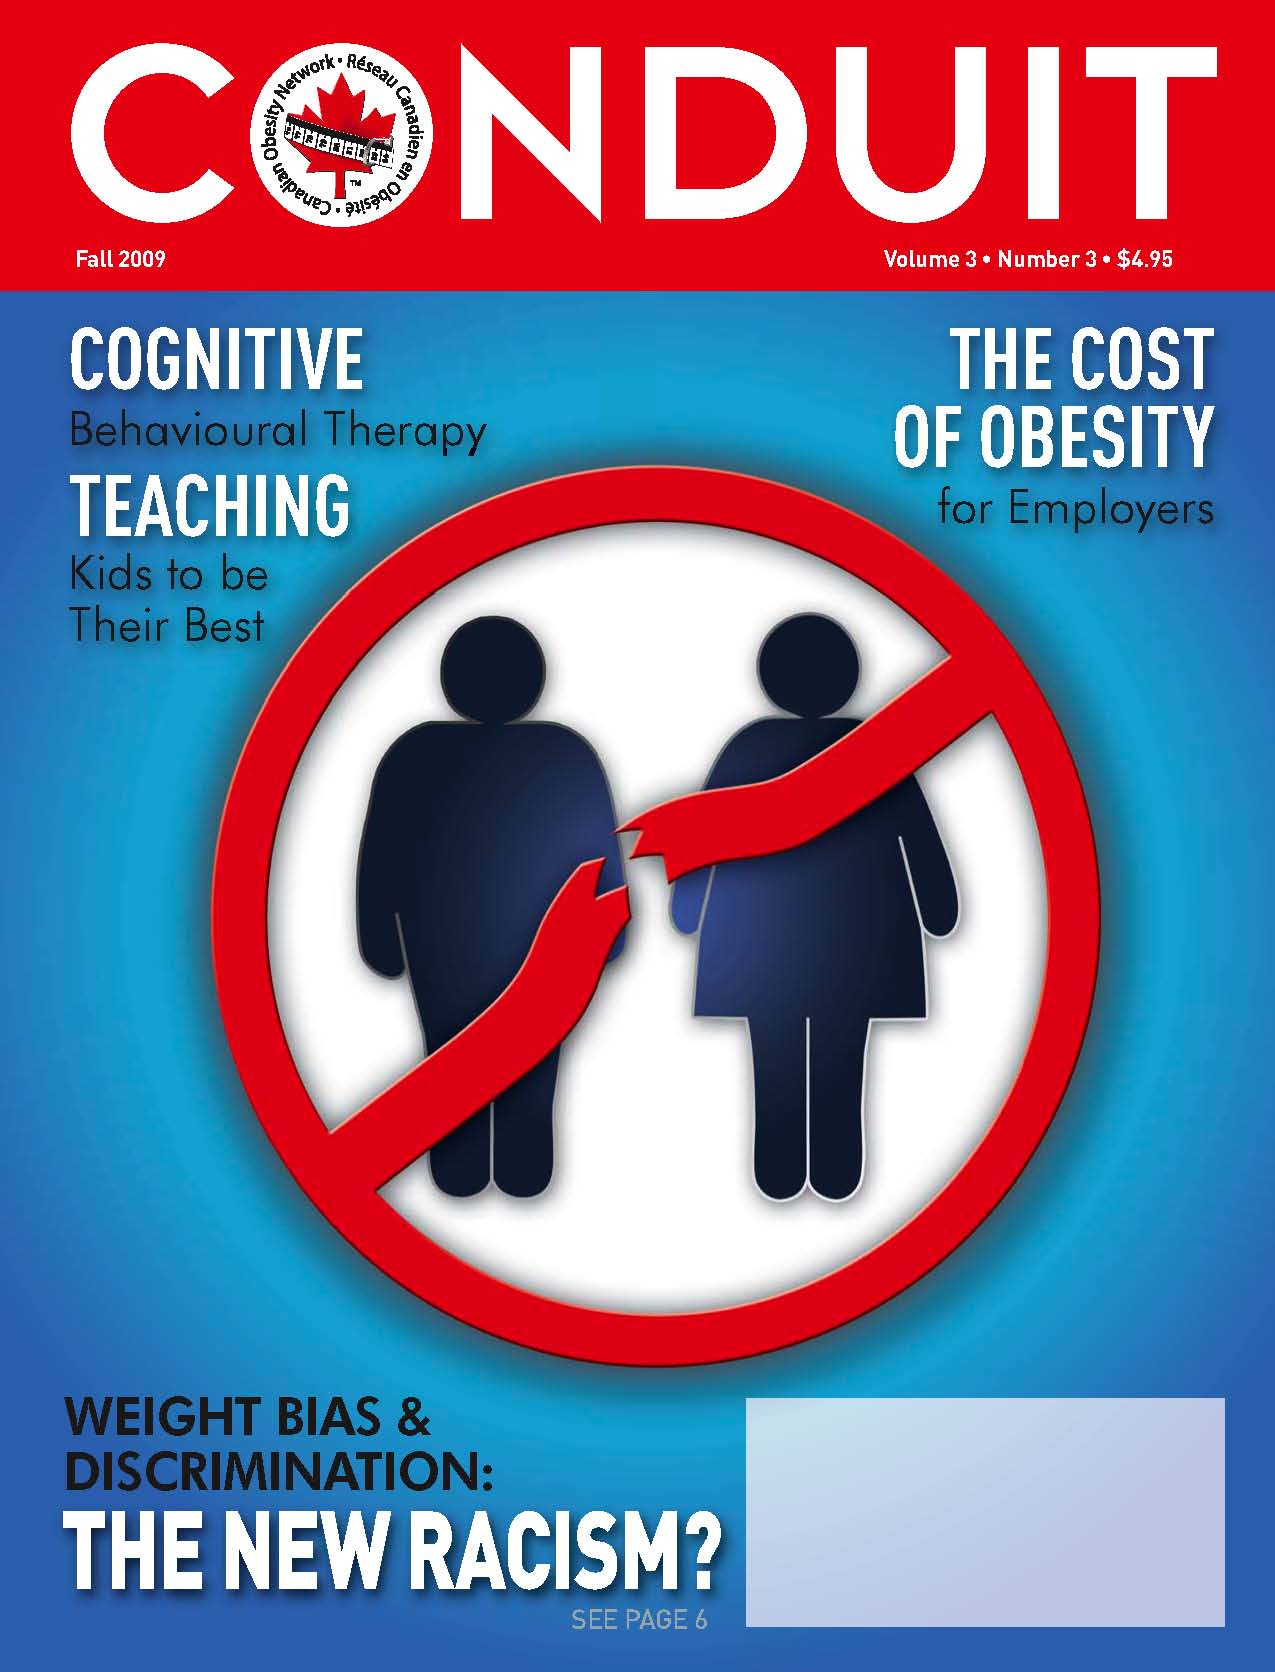 sharma-obesity-weight-bias-conduit1